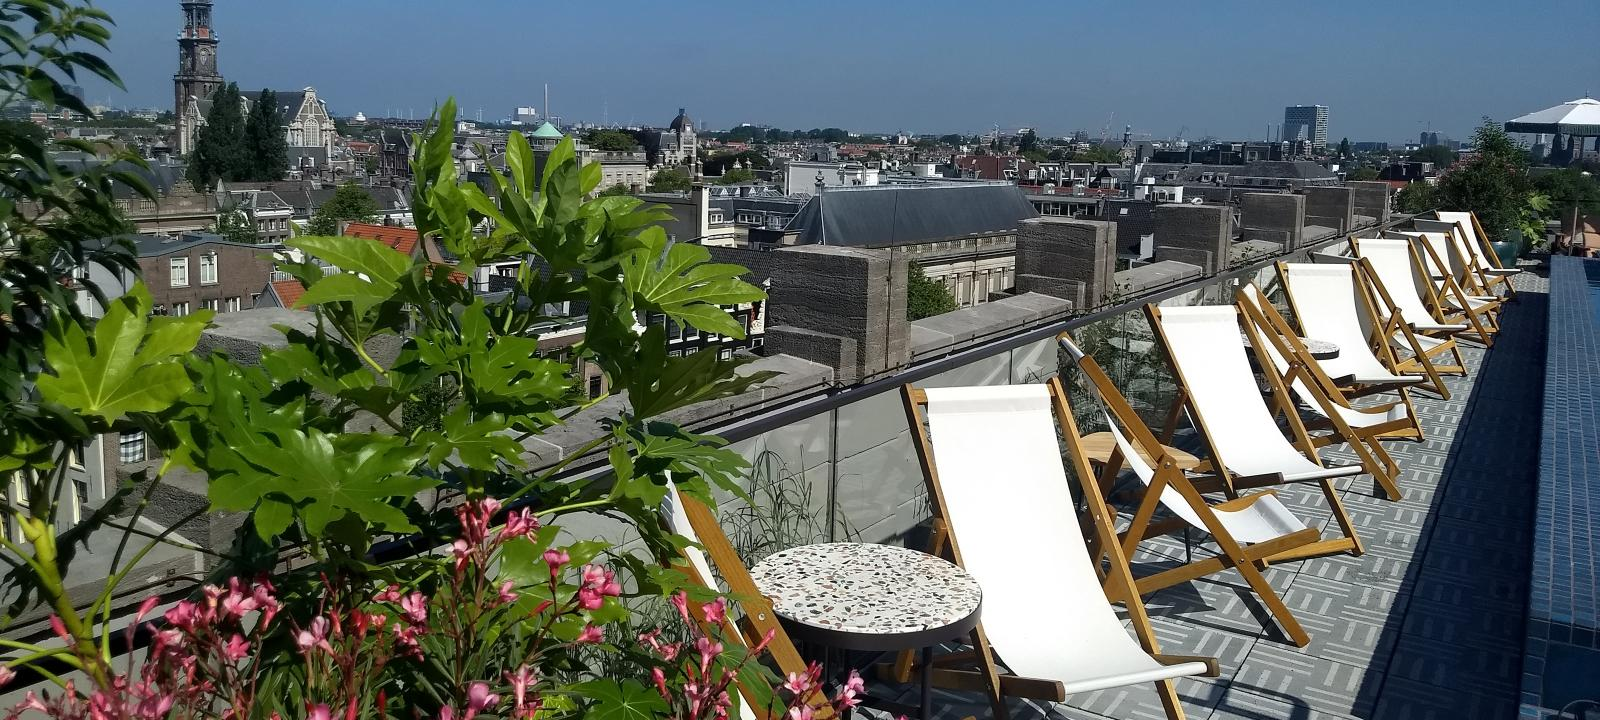 Soho House, Amsterdam | ZinCo Green Roof Systems